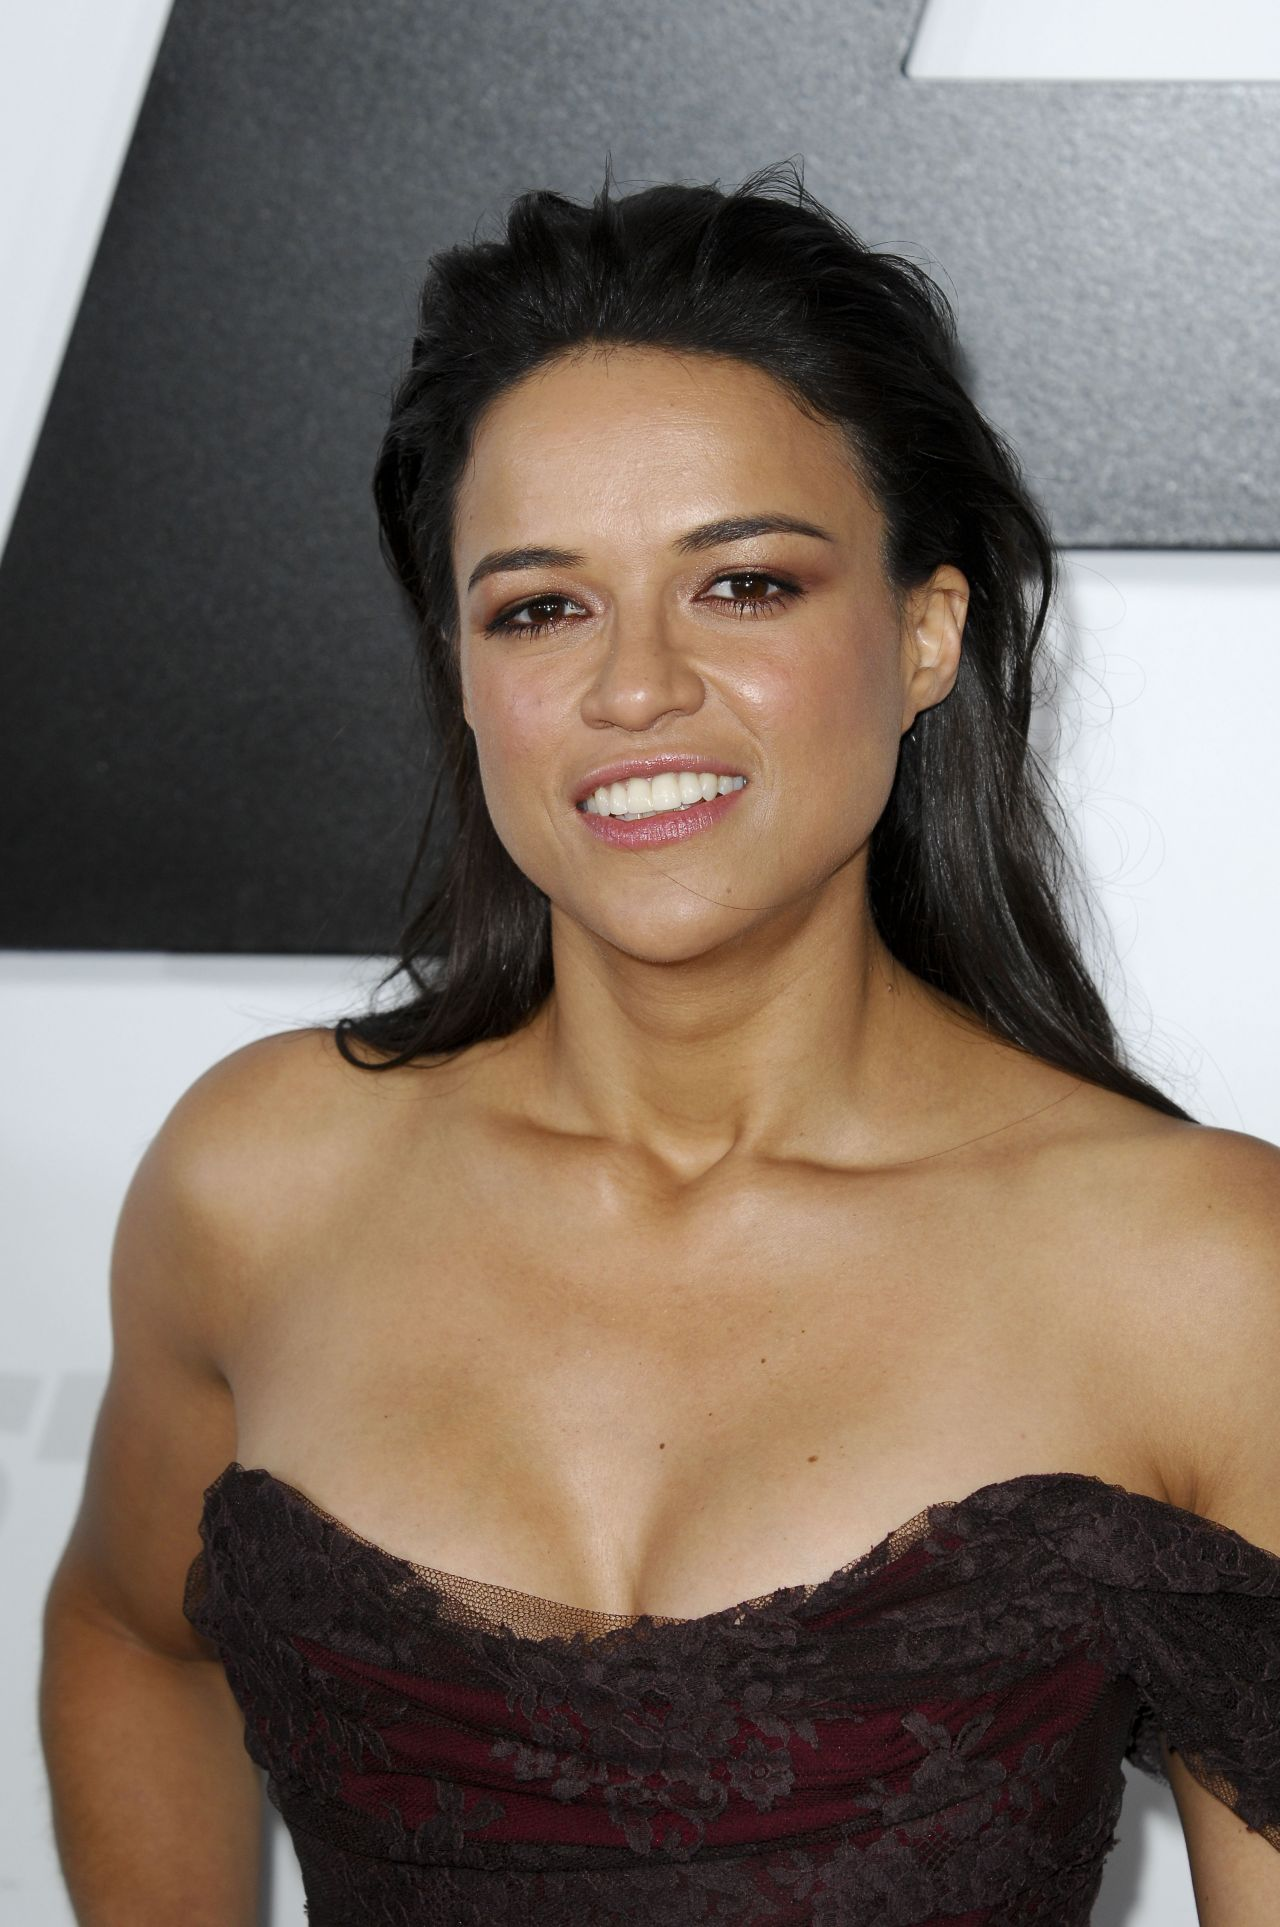 Michelle Rodriguez Furious 7 Premiere In Hollywood